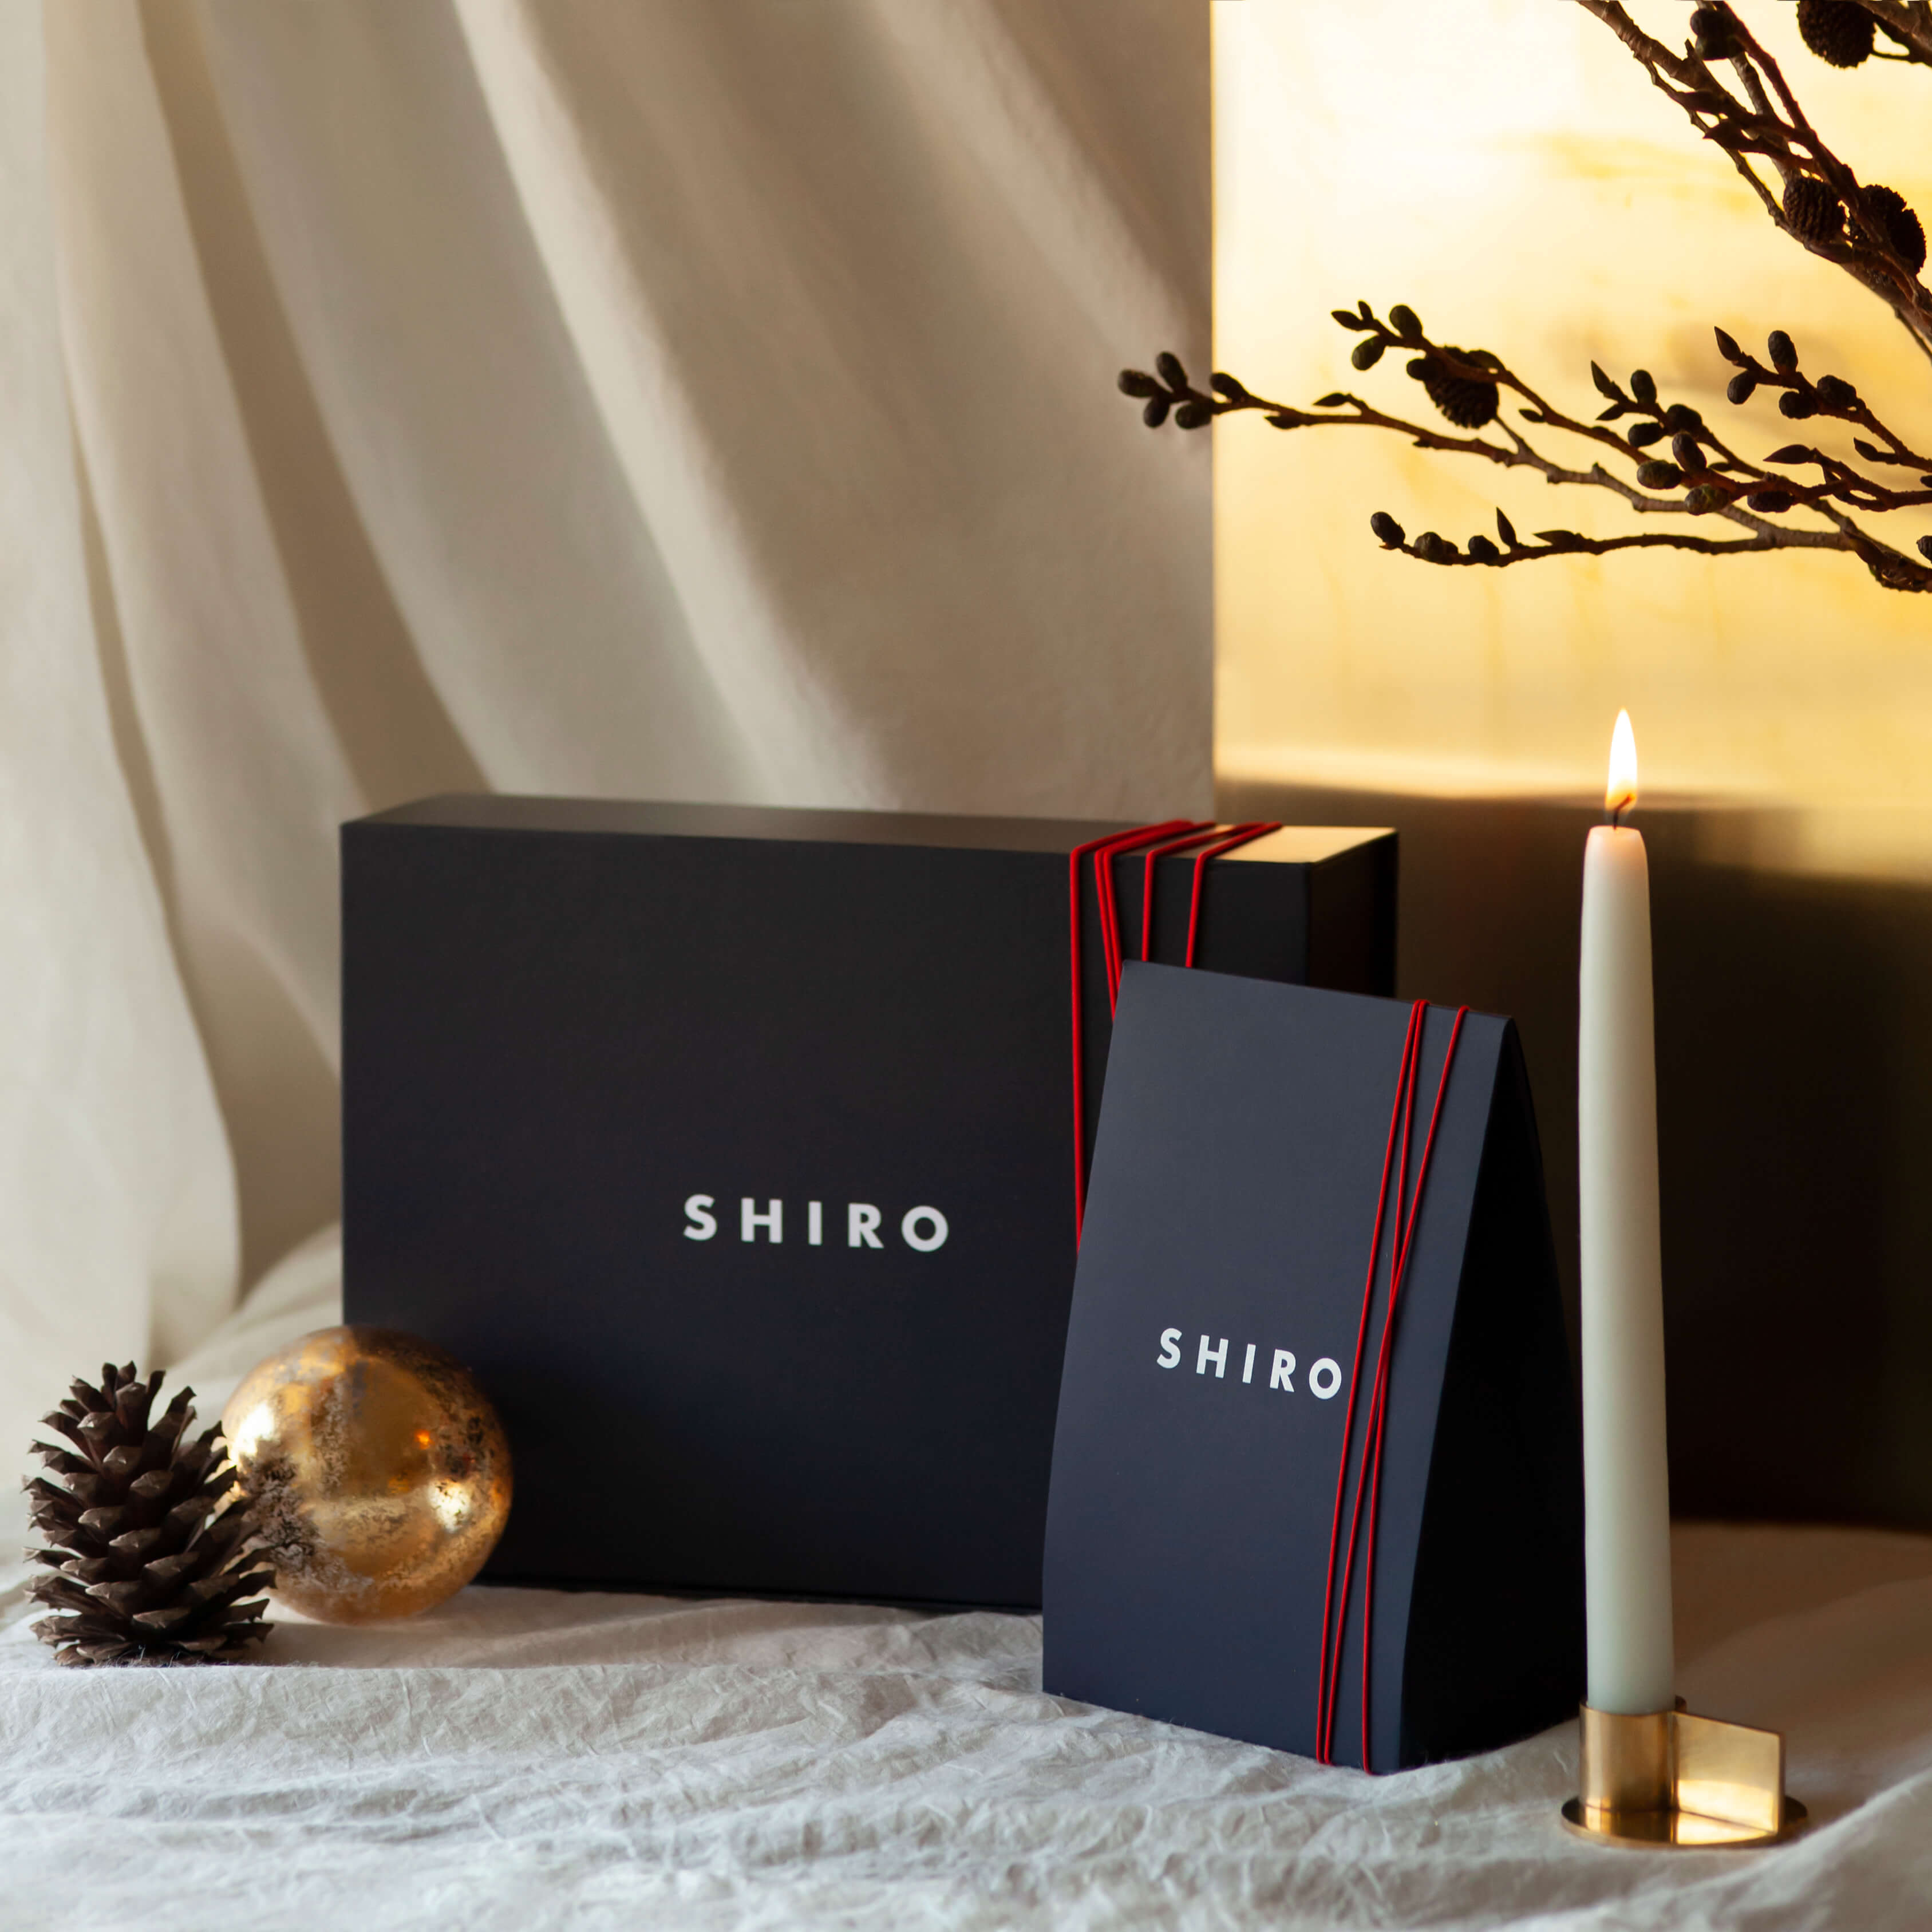 SHIRO HOLIDAY SPECIAL EVENT 新宿 伊勢丹 shinjuku isetan popup 3